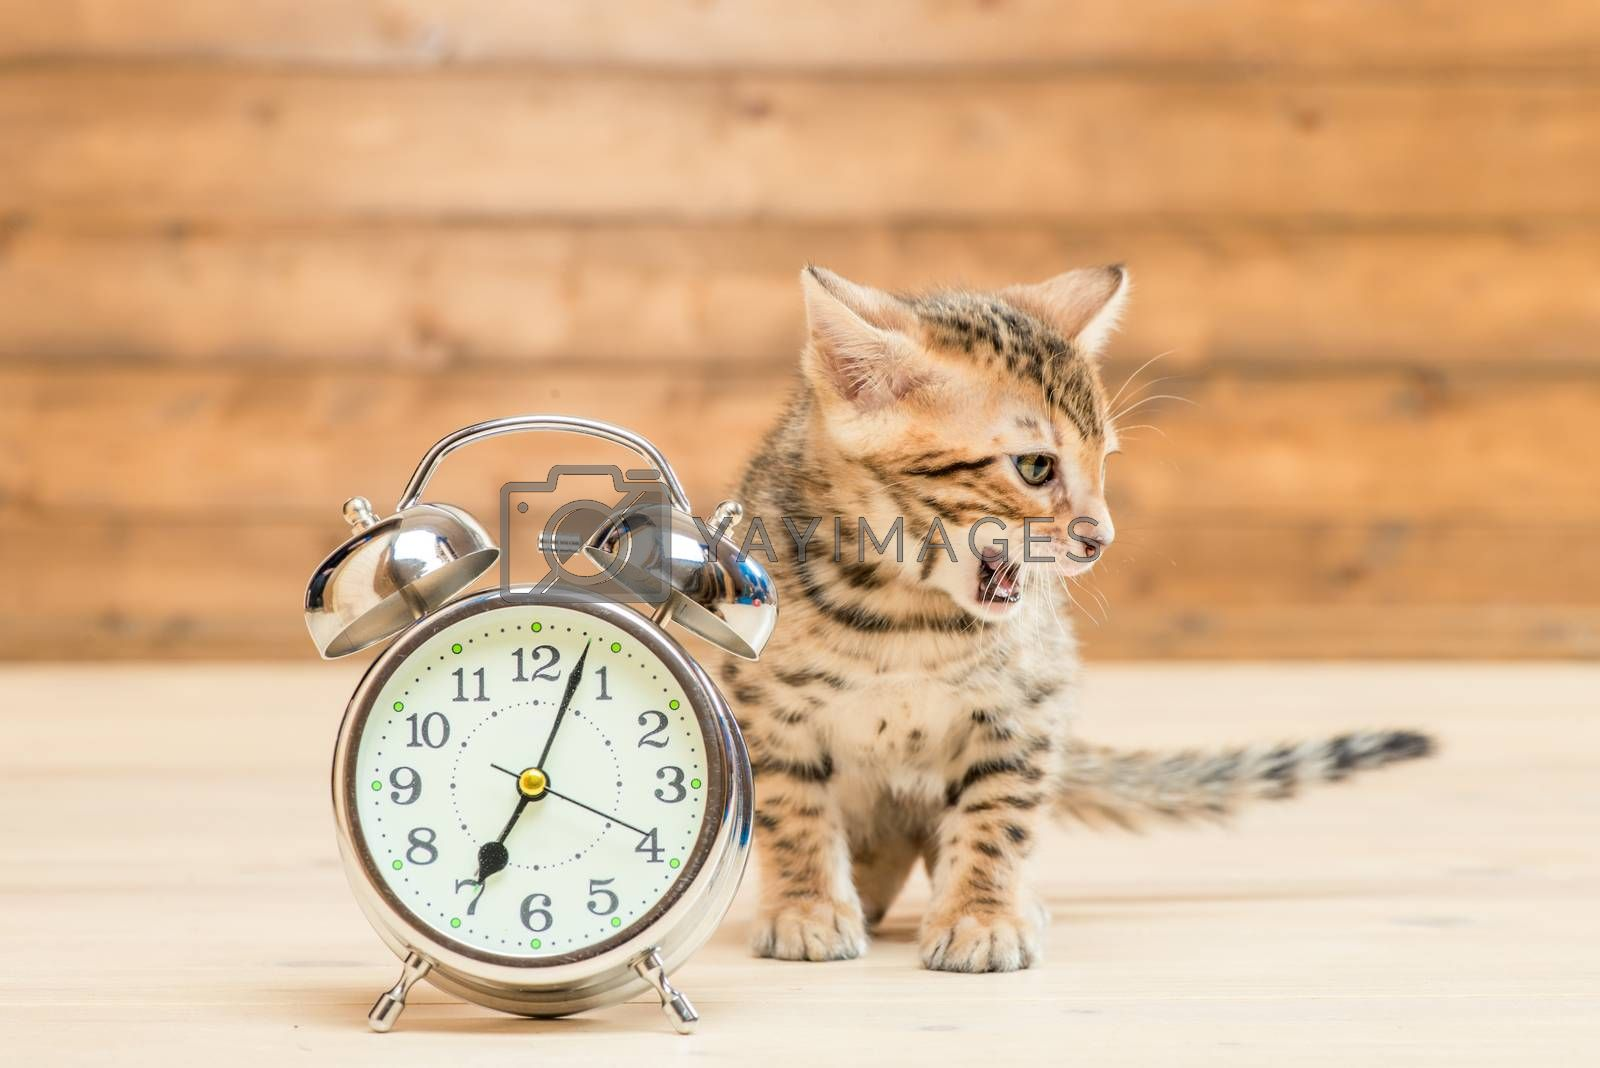 Bengal breed kitten and a retro alarm clock that shows 7 hours by Labunskiy K.